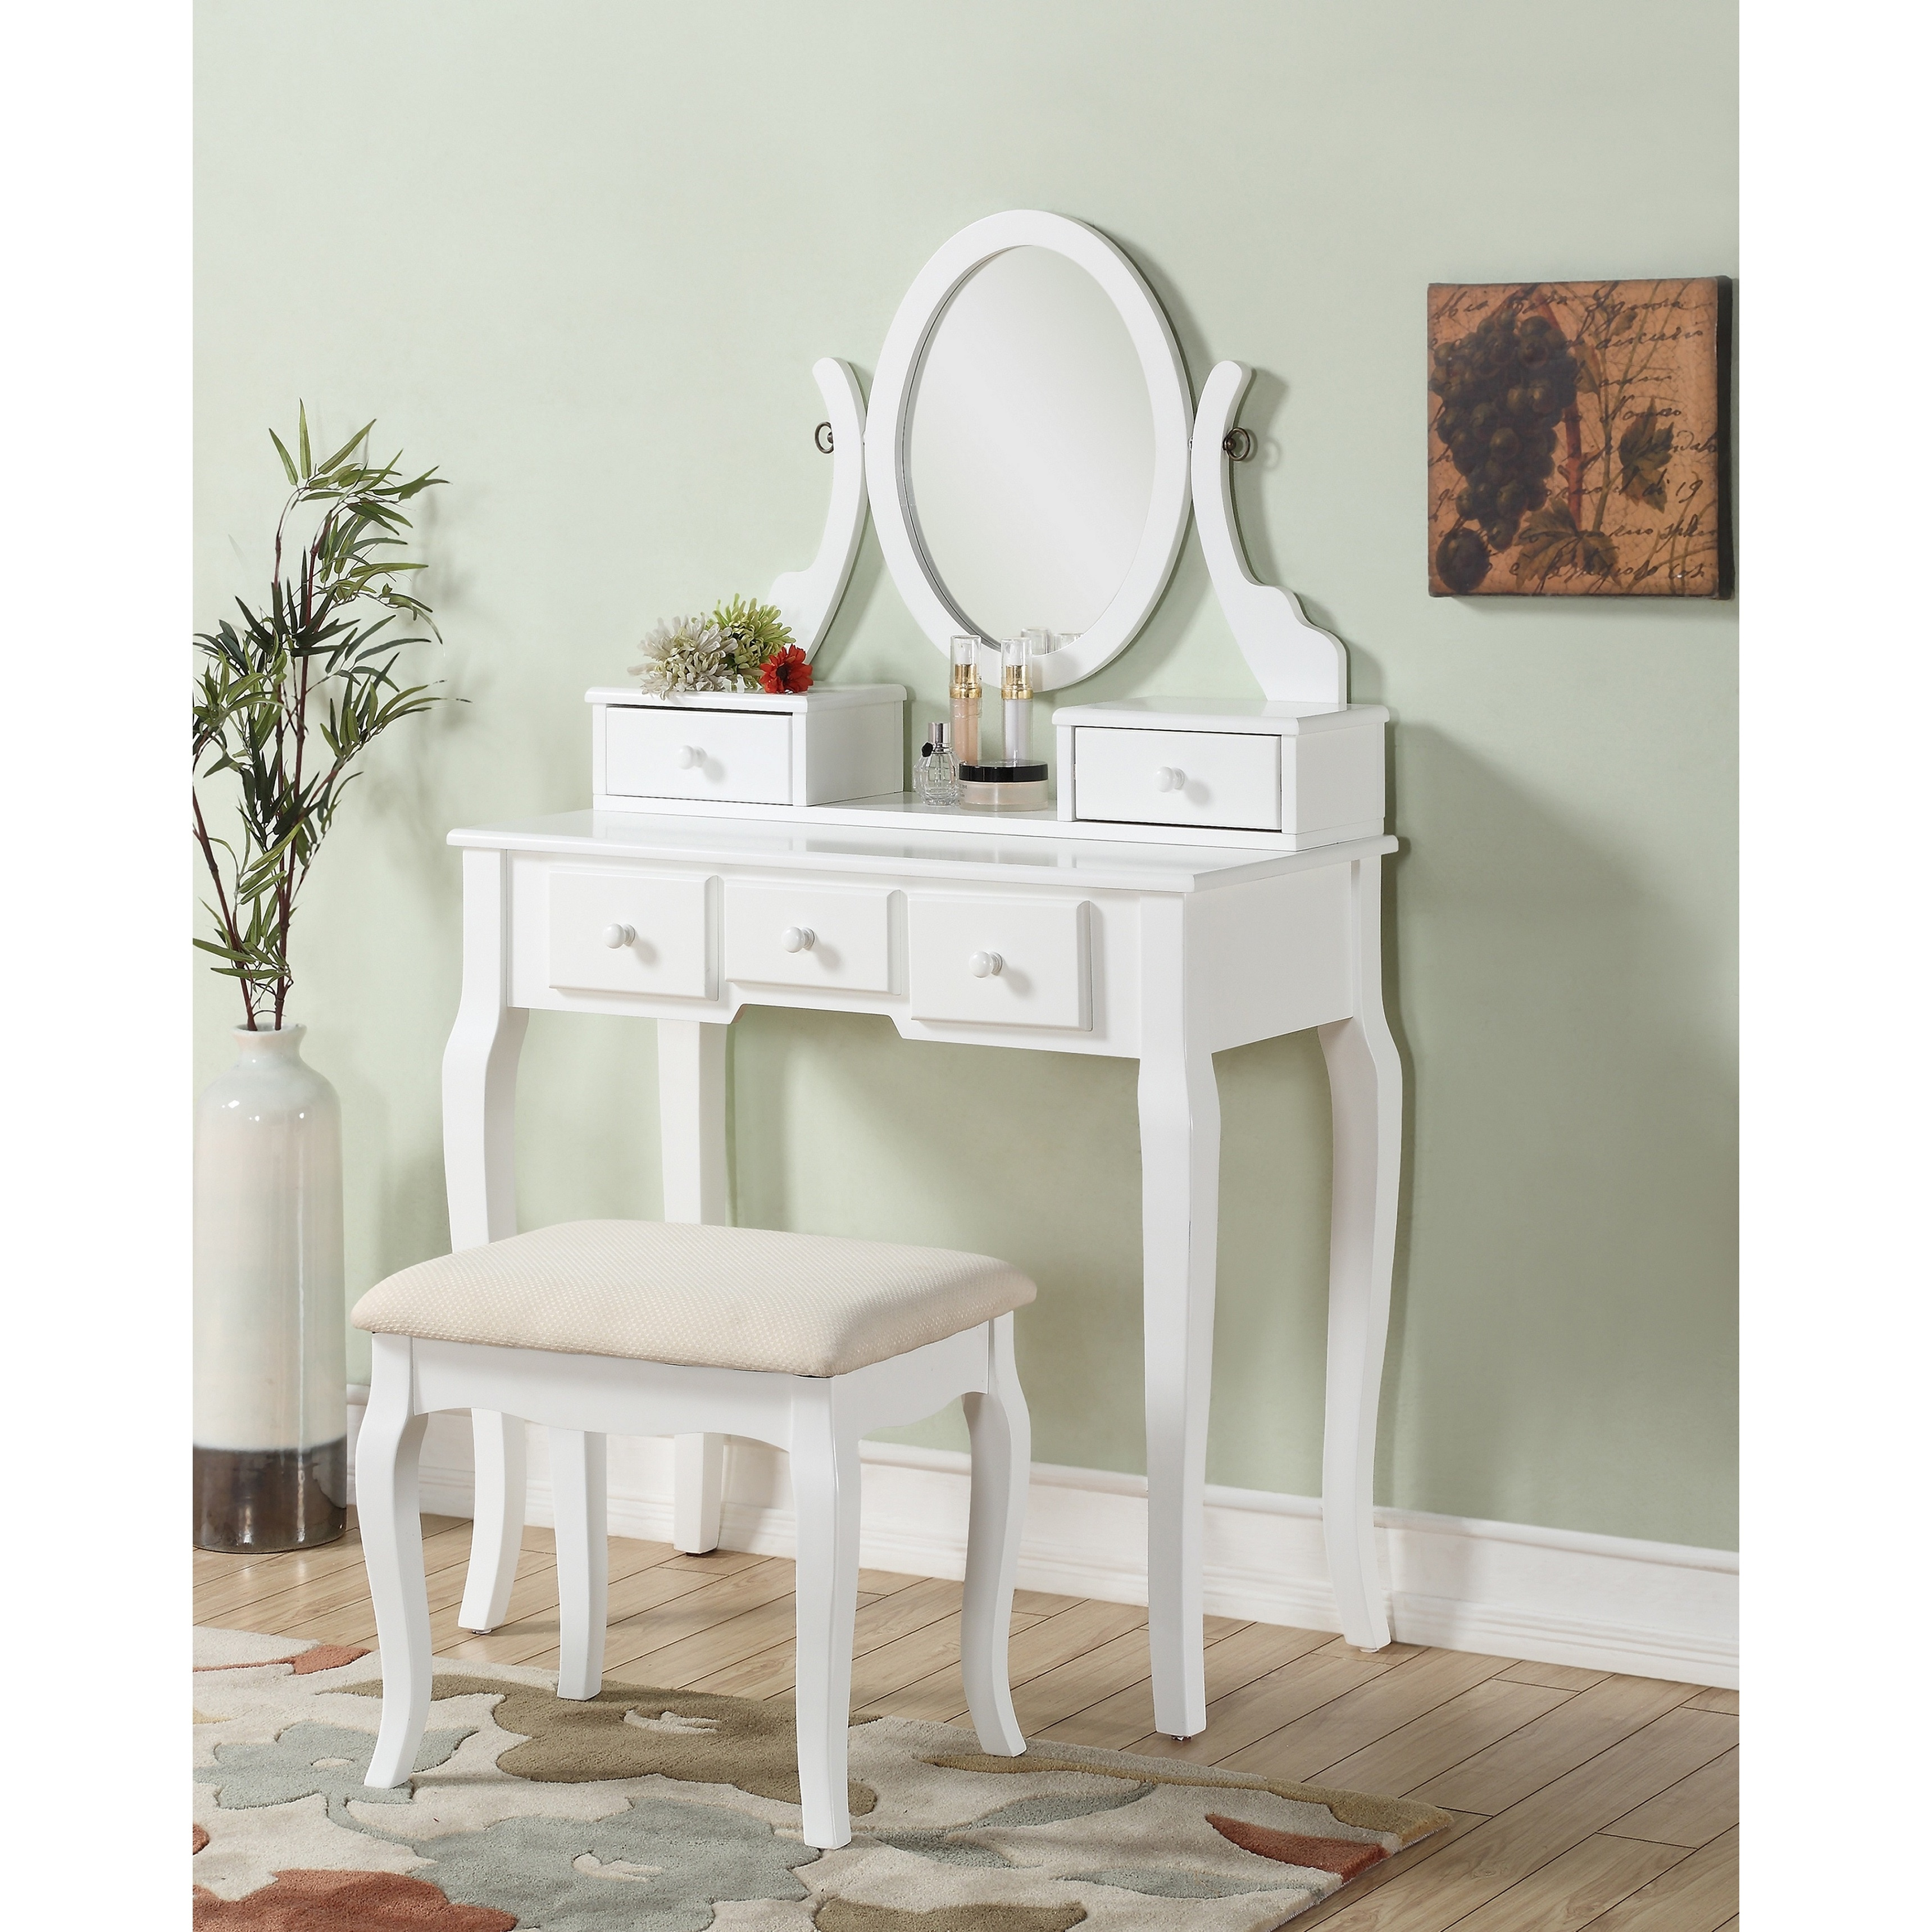 Ashley Wood Makeup Vanity Table and Stool Set (White - Wh...